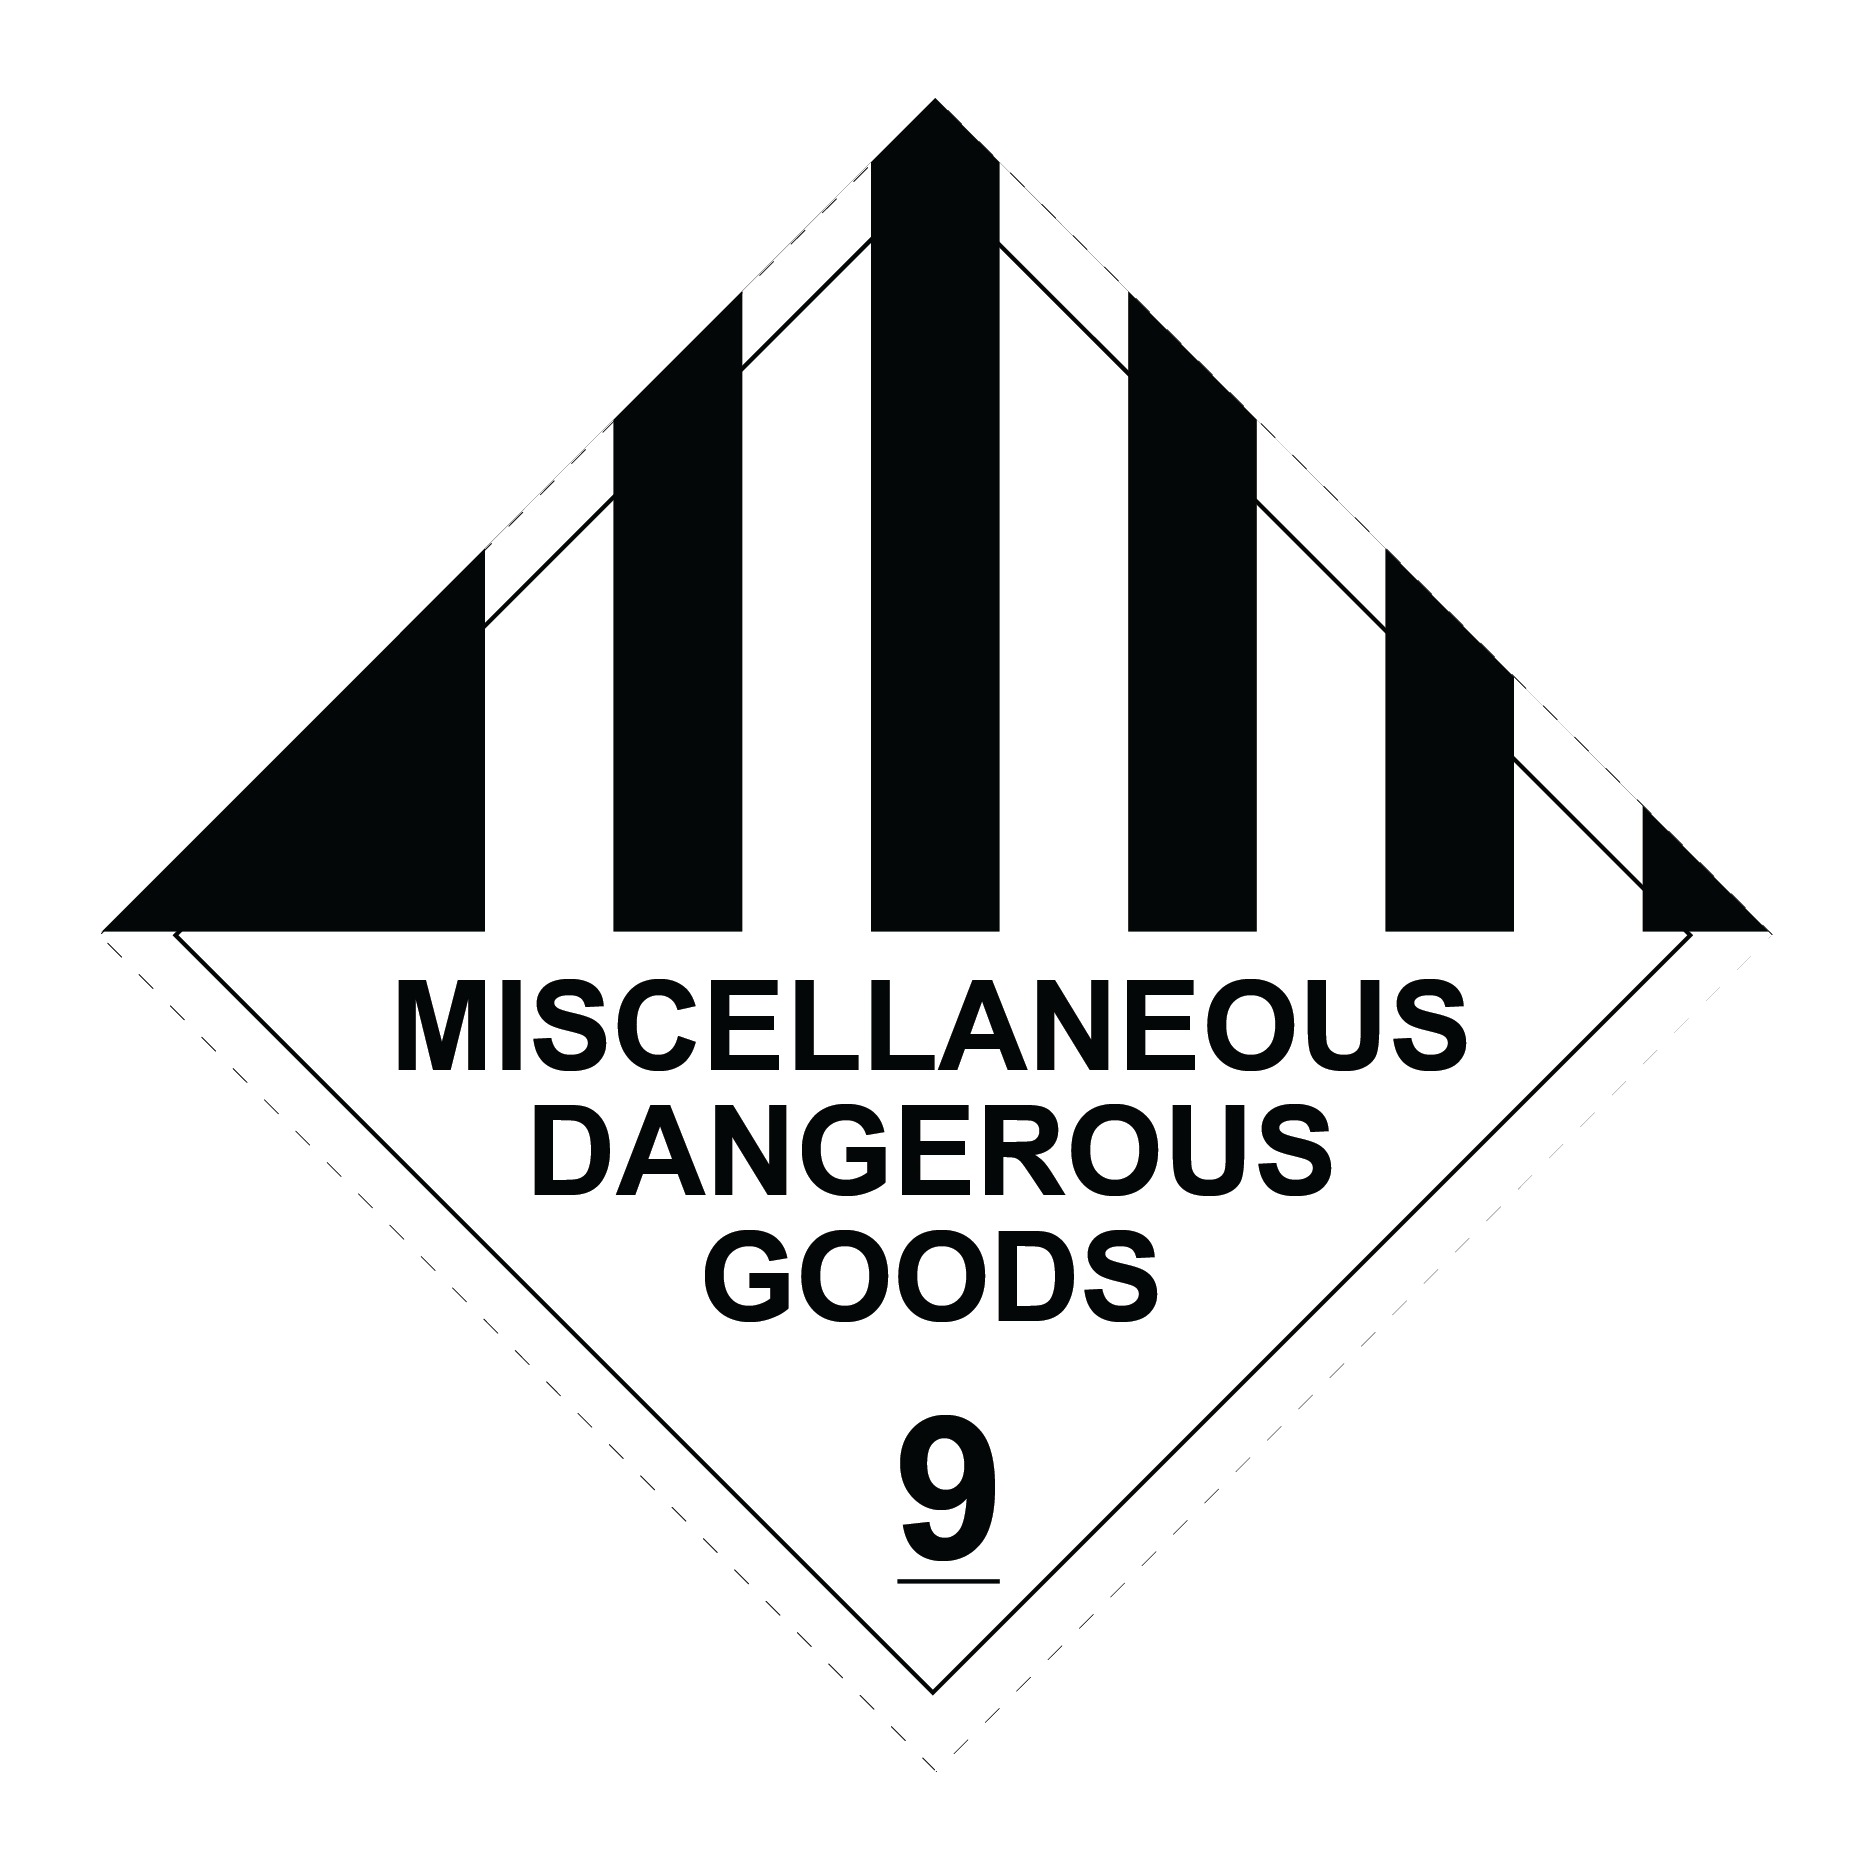 class 9 miscellaneous dangerous goods sign